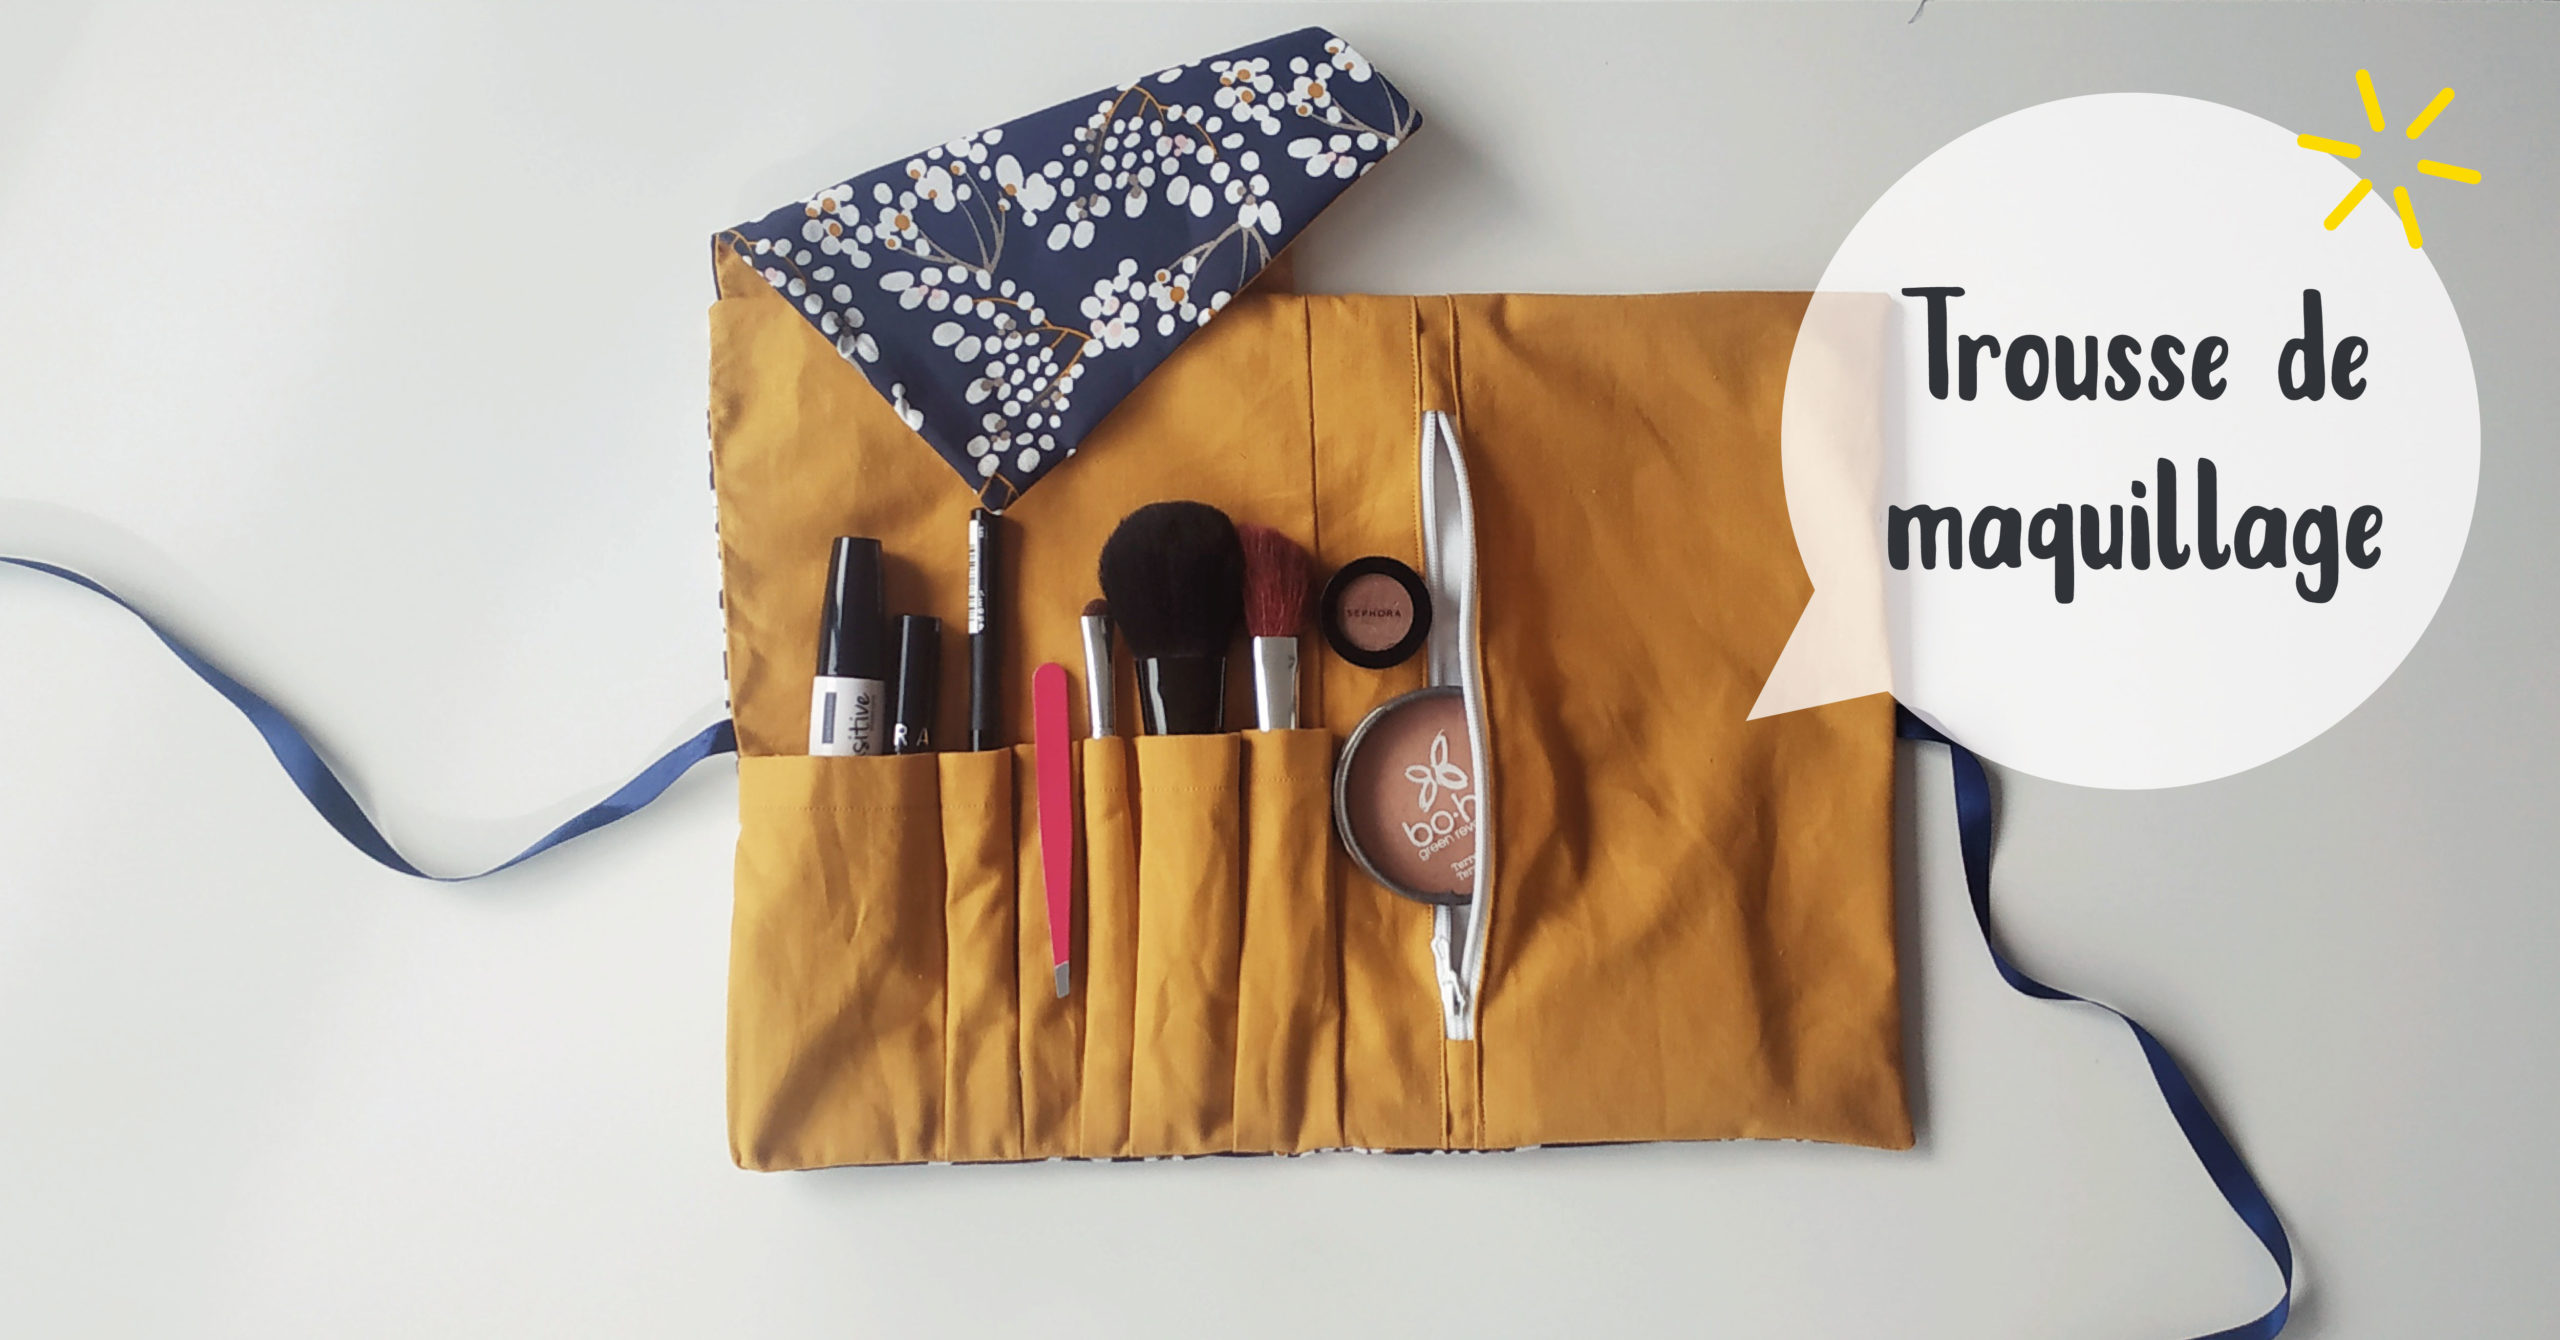 Trousse de maquillage @ L'atelier de No Working